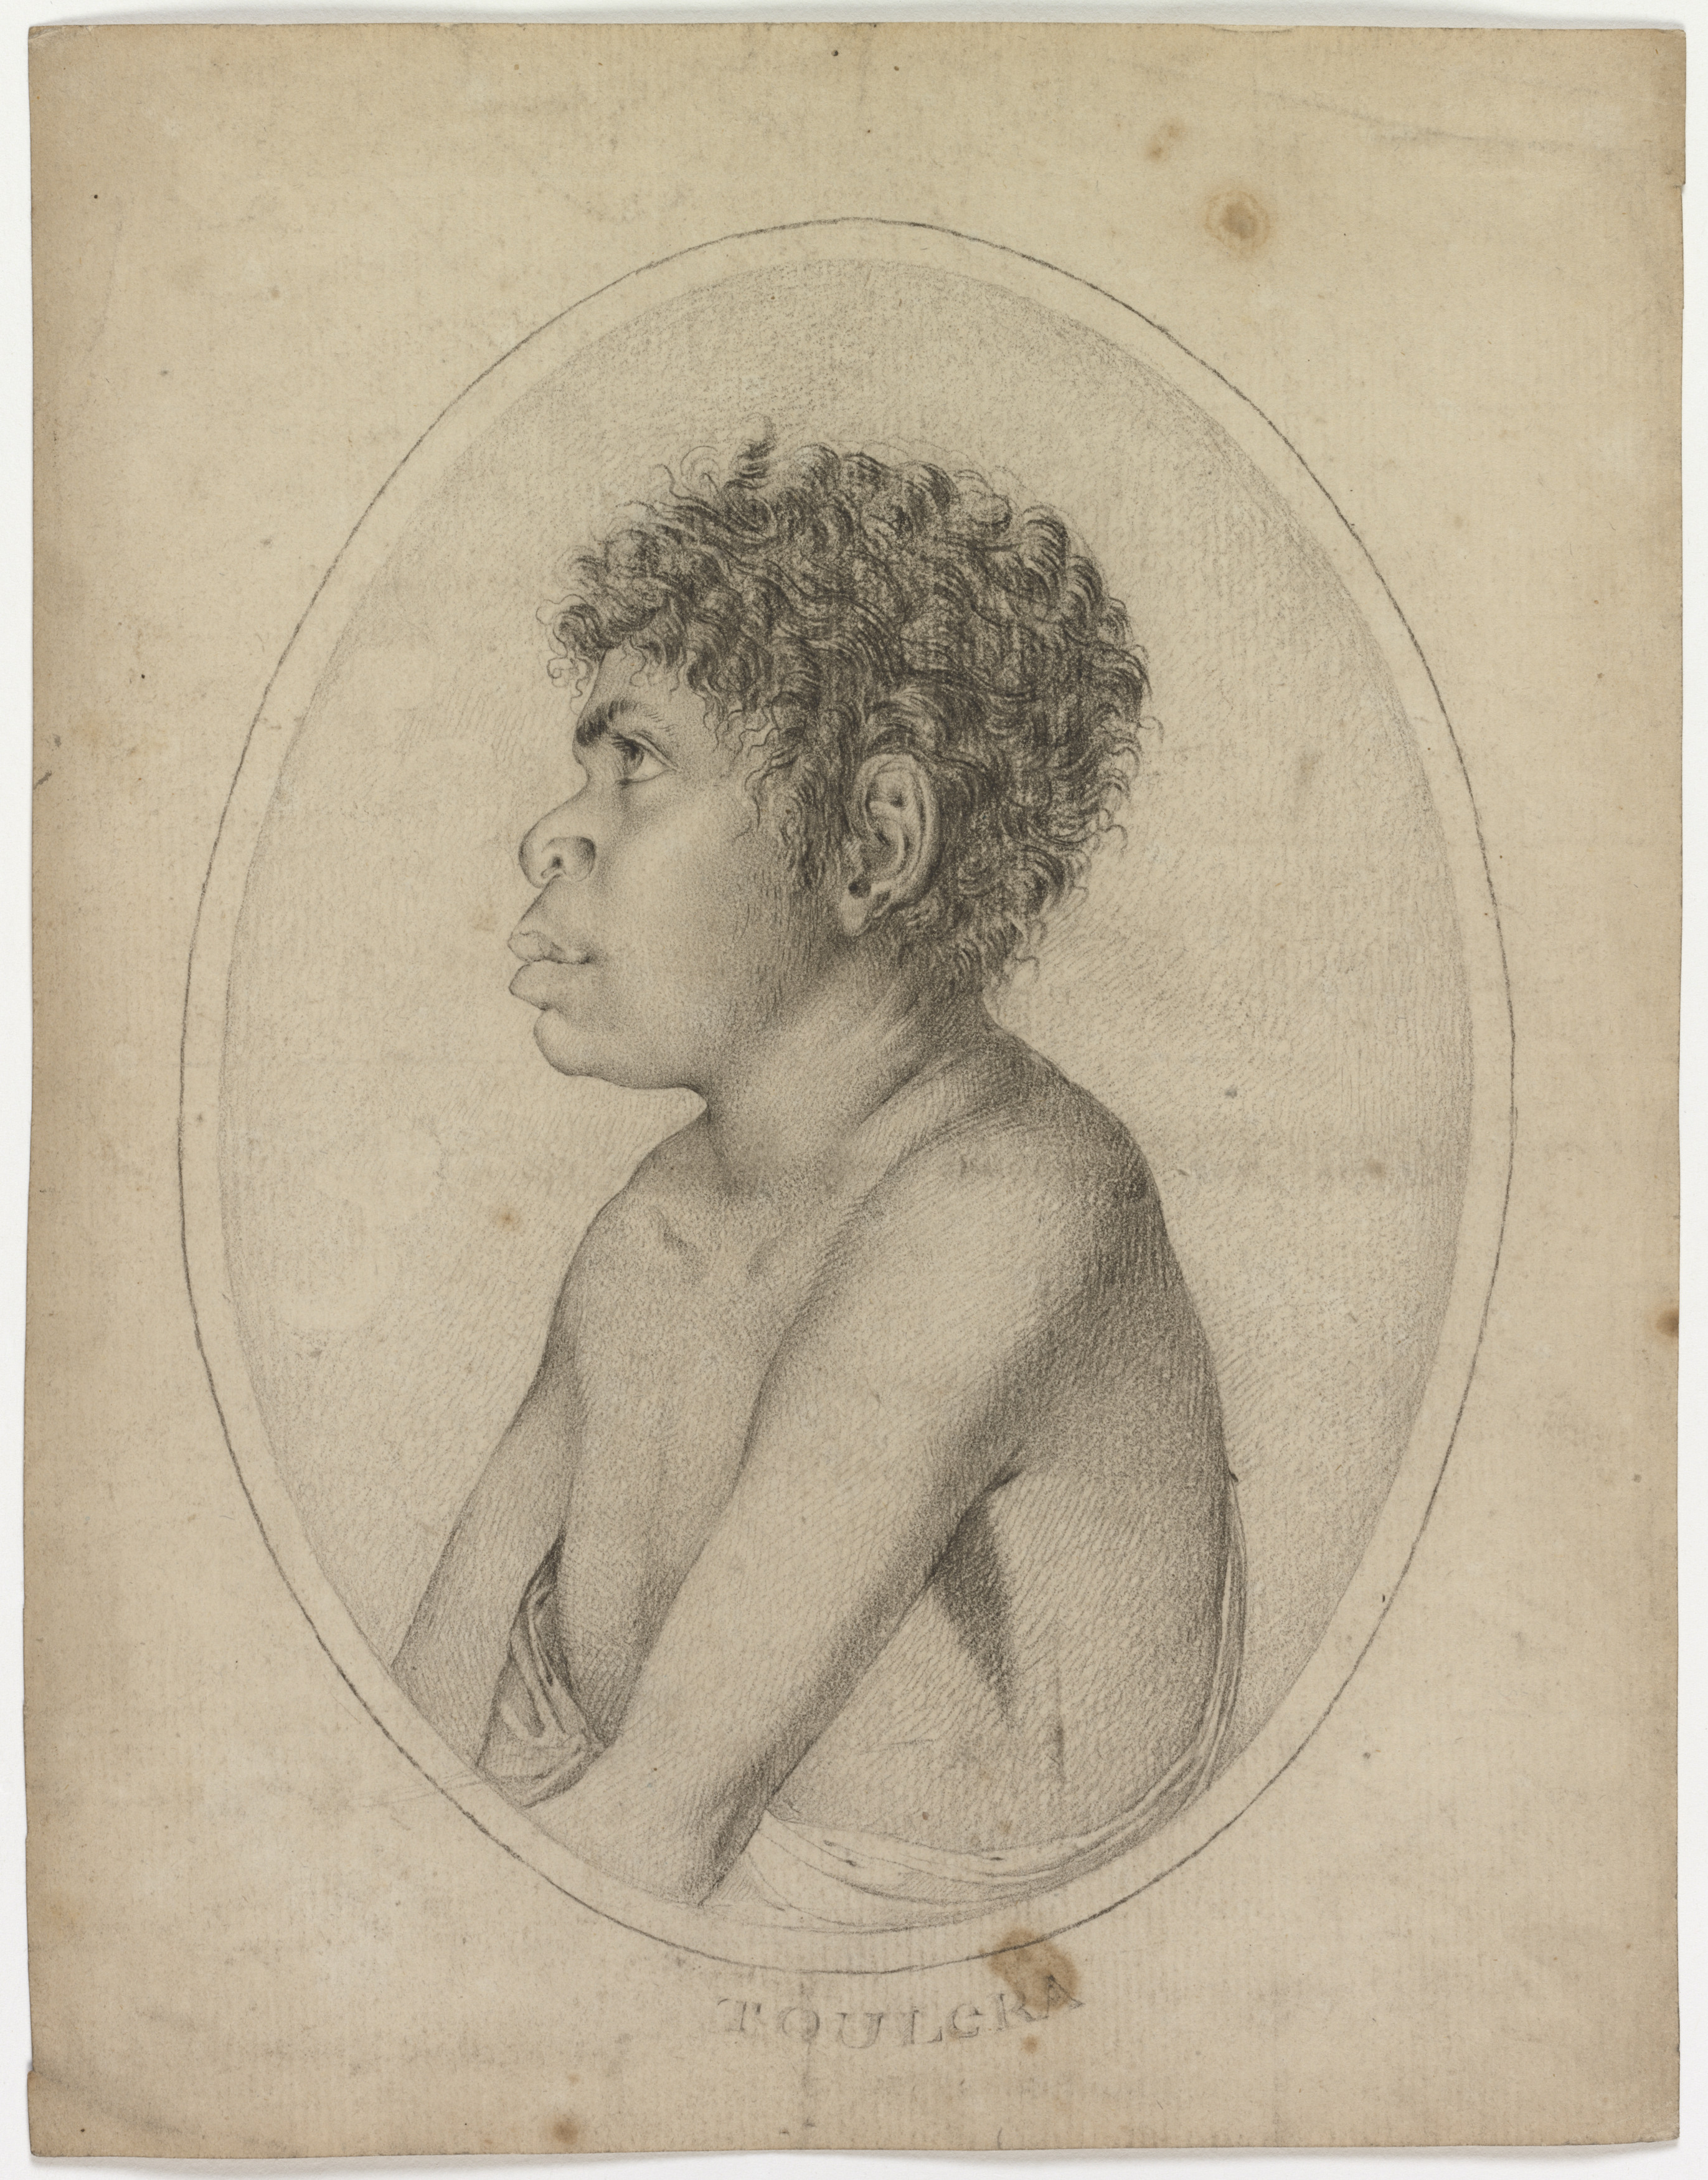 A black pencil or dark graphite sketch on brown paper of an Aboriginal boy.